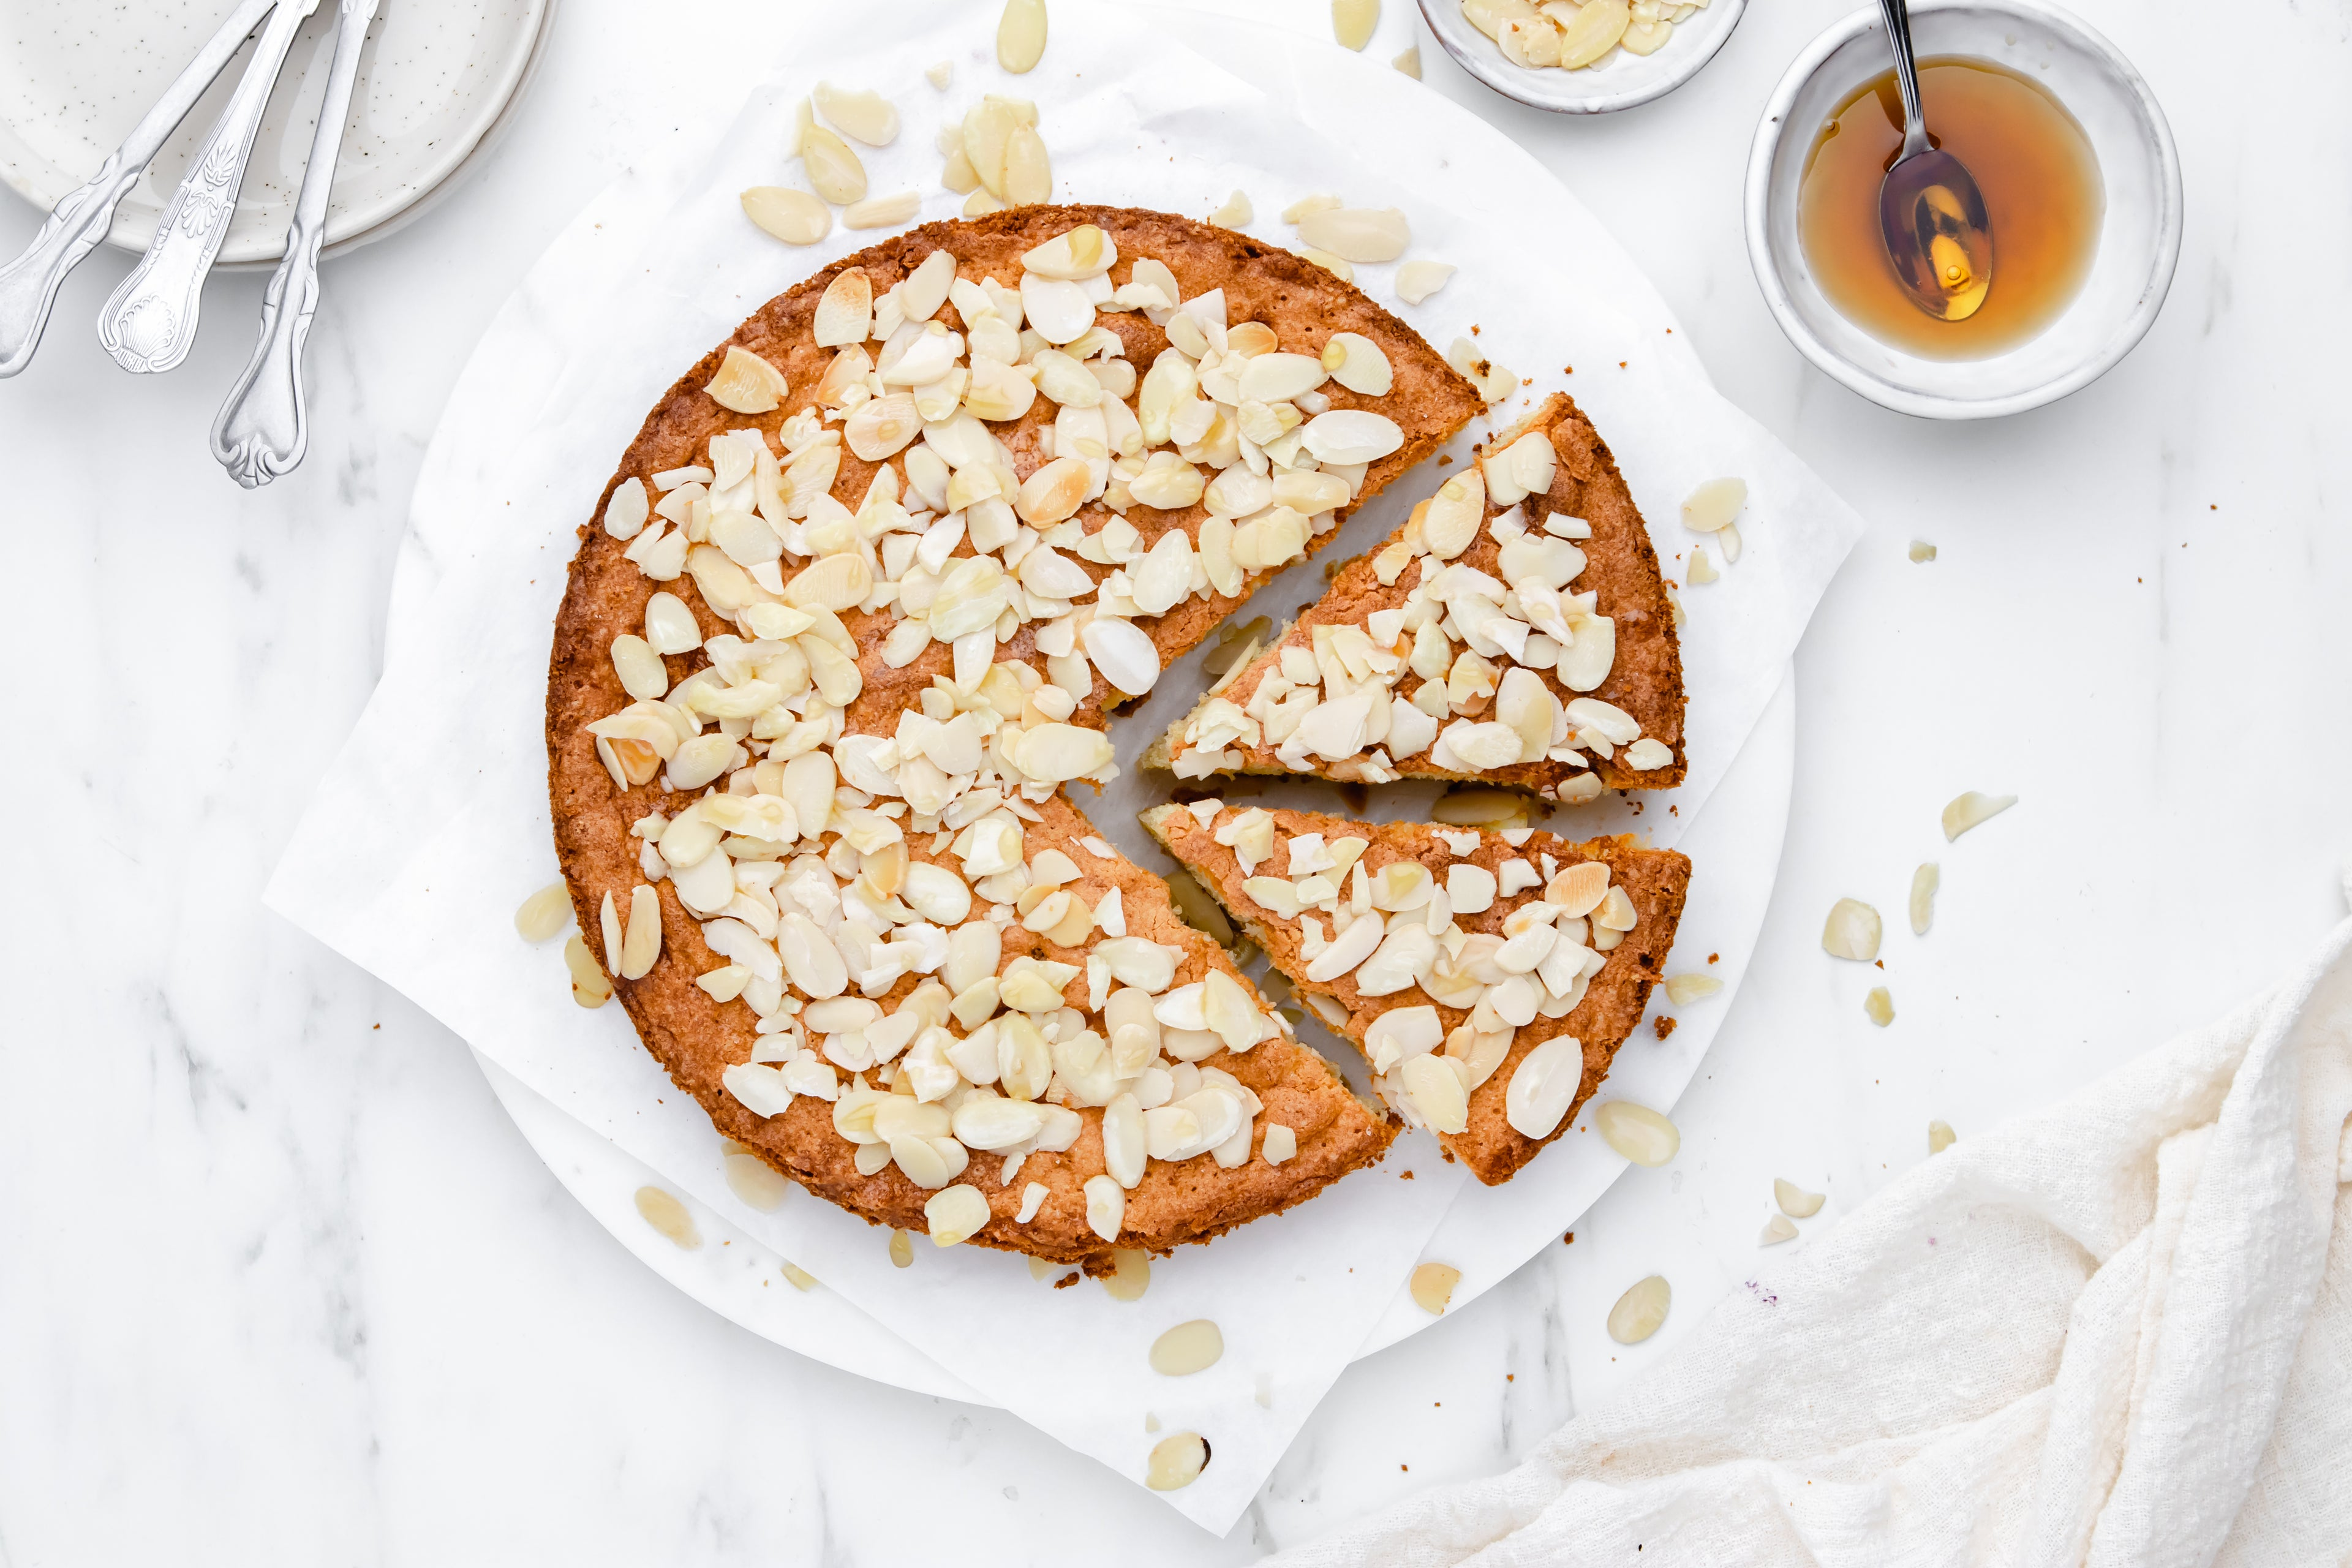 Almond cake with two slices cut out, sprinkled with almonds